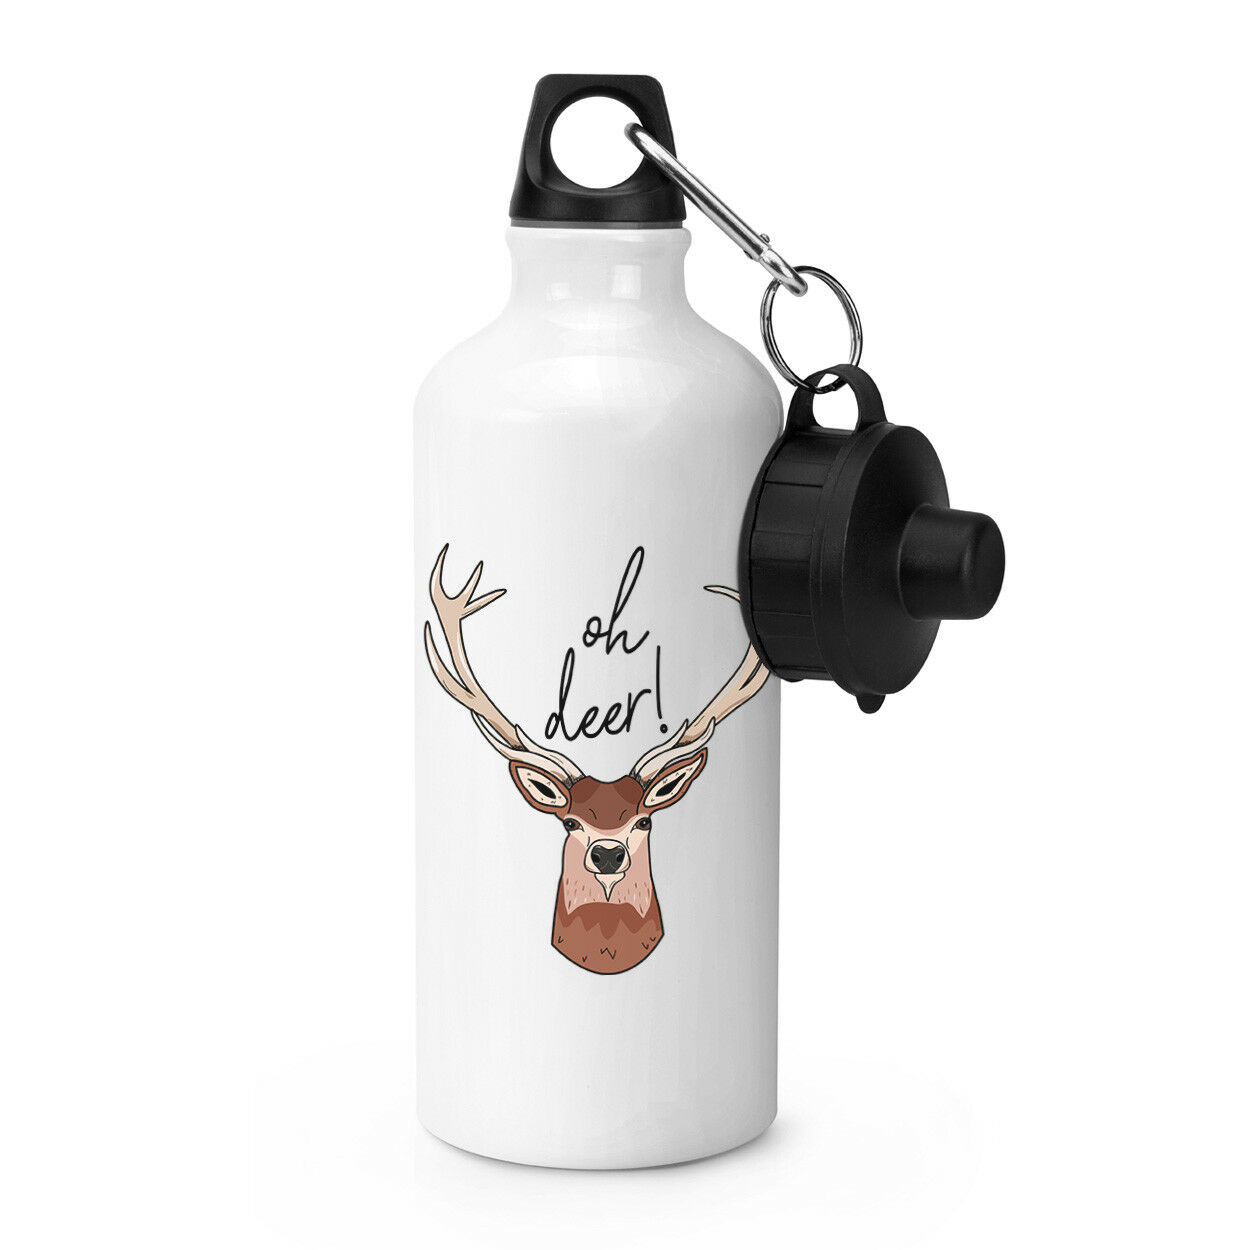 Oh deer Sports Boisson Bouteille Camping fiole-Drôle fiole-Drôle fiole-Drôle Stag Blague Animal c6ec39